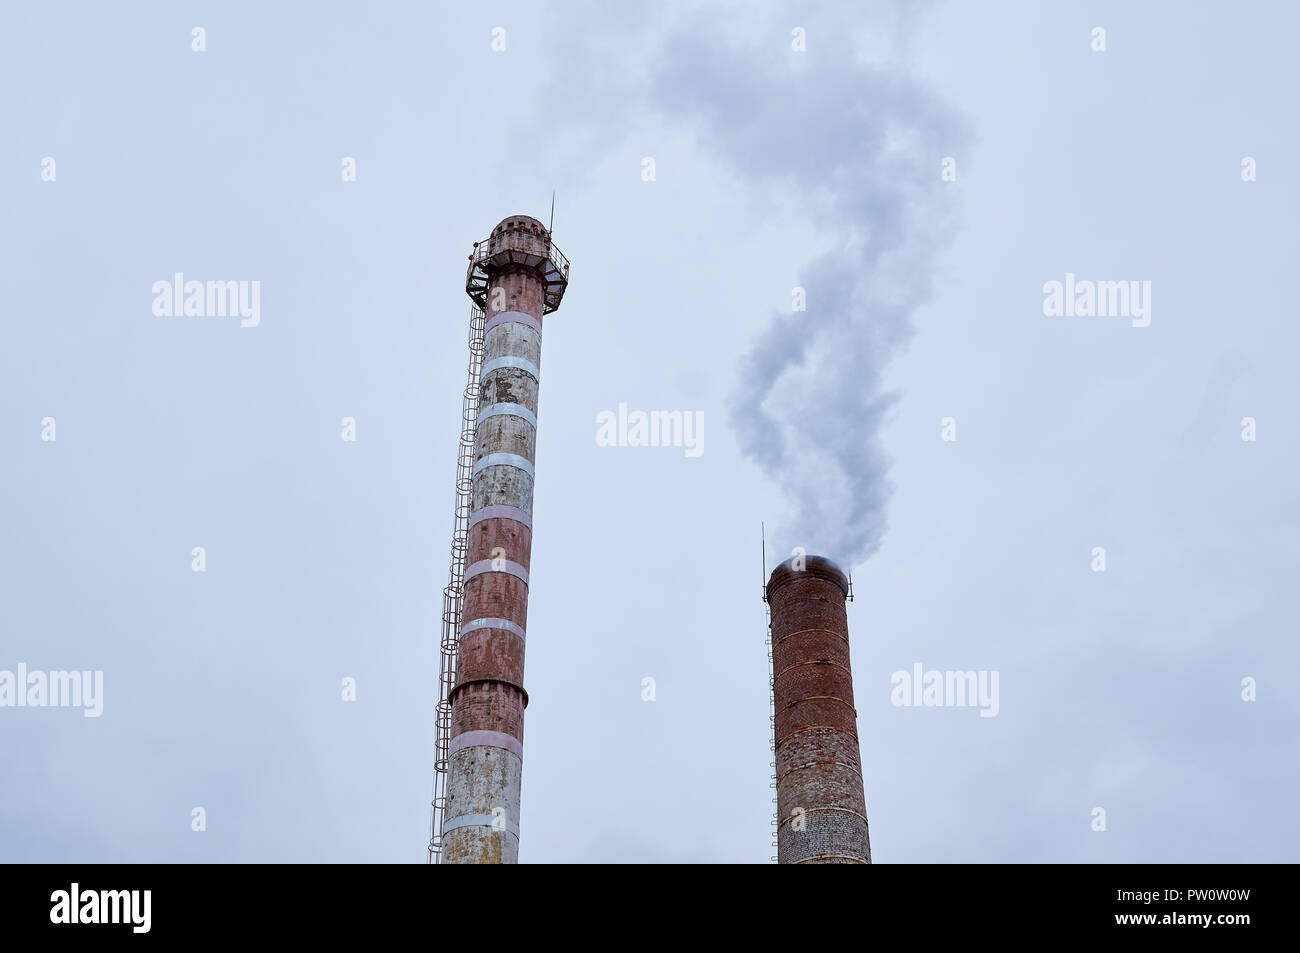 Smoking chimneys against the backdrop of an overcast sky. Industrial background. - Stock Image